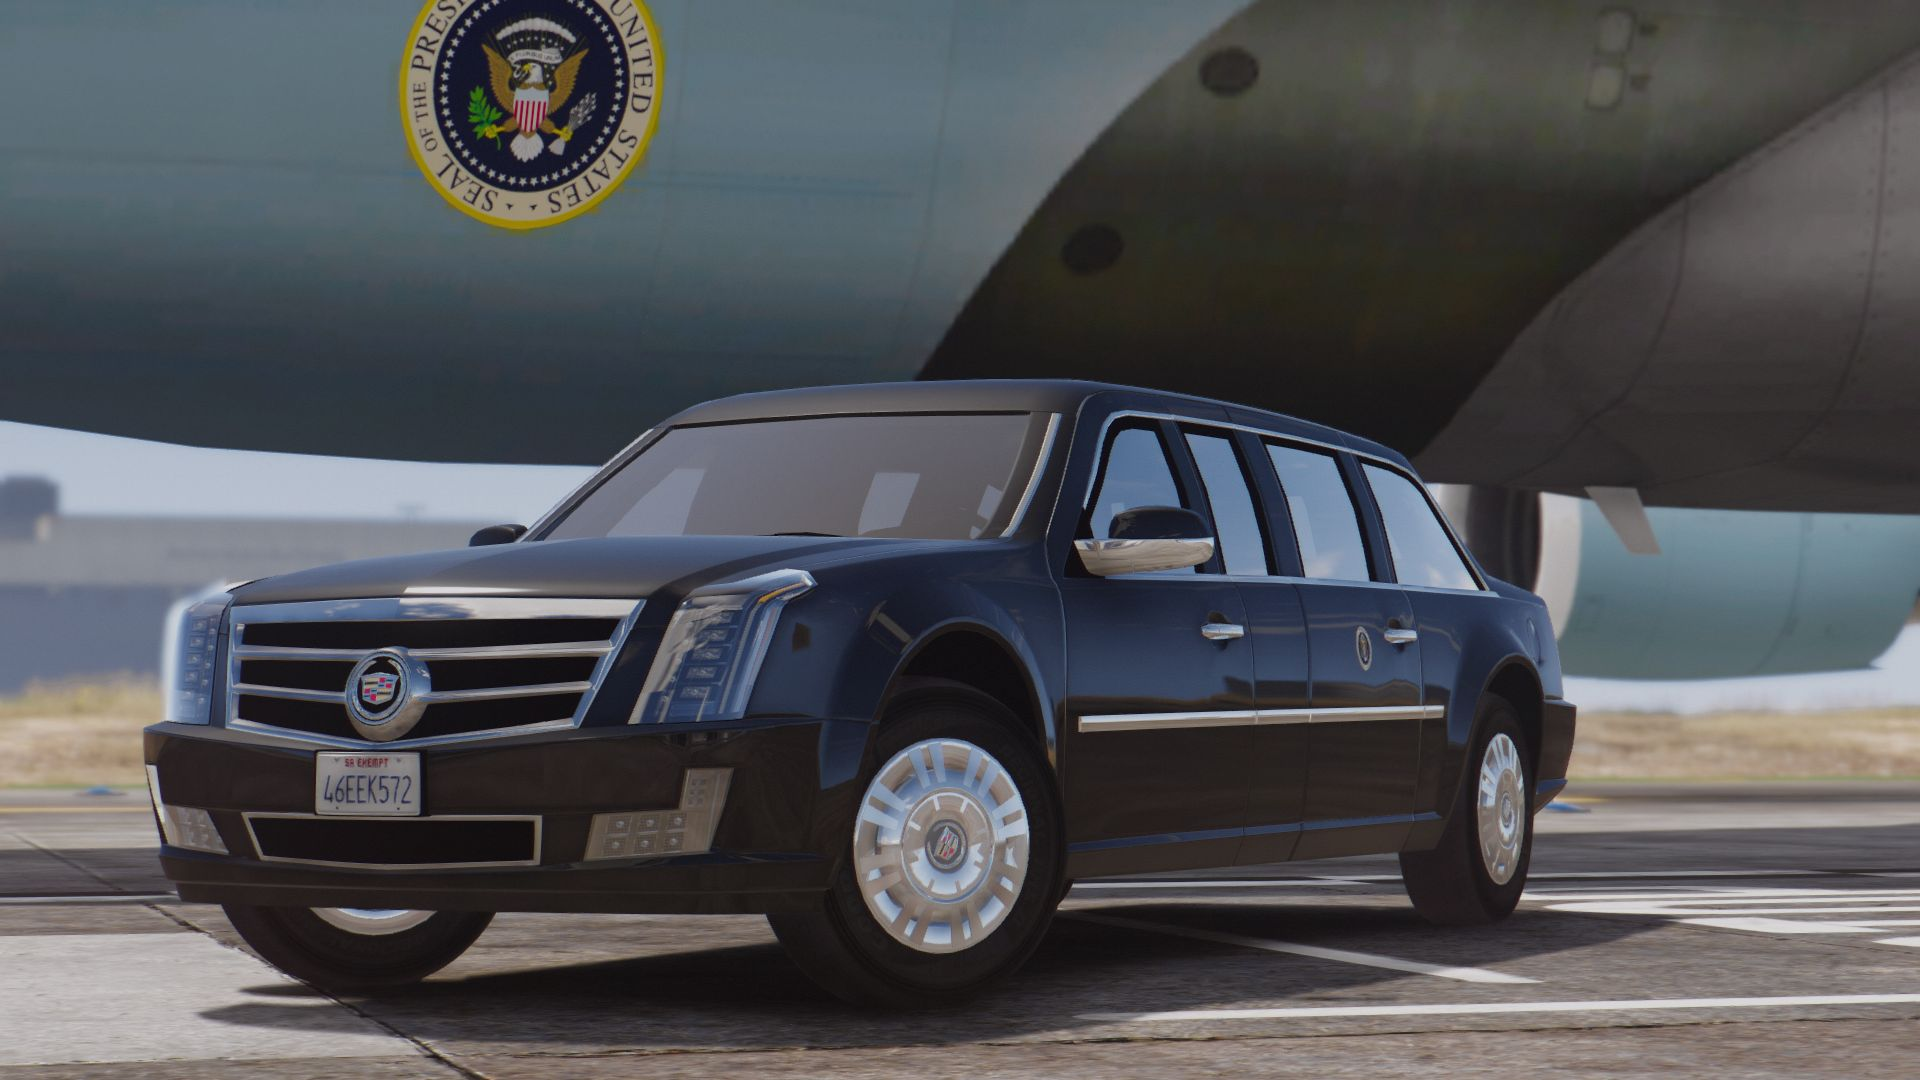 VEHICLE]2017 Presidential State Car (Cadillac One a.k.a. The Beast ...